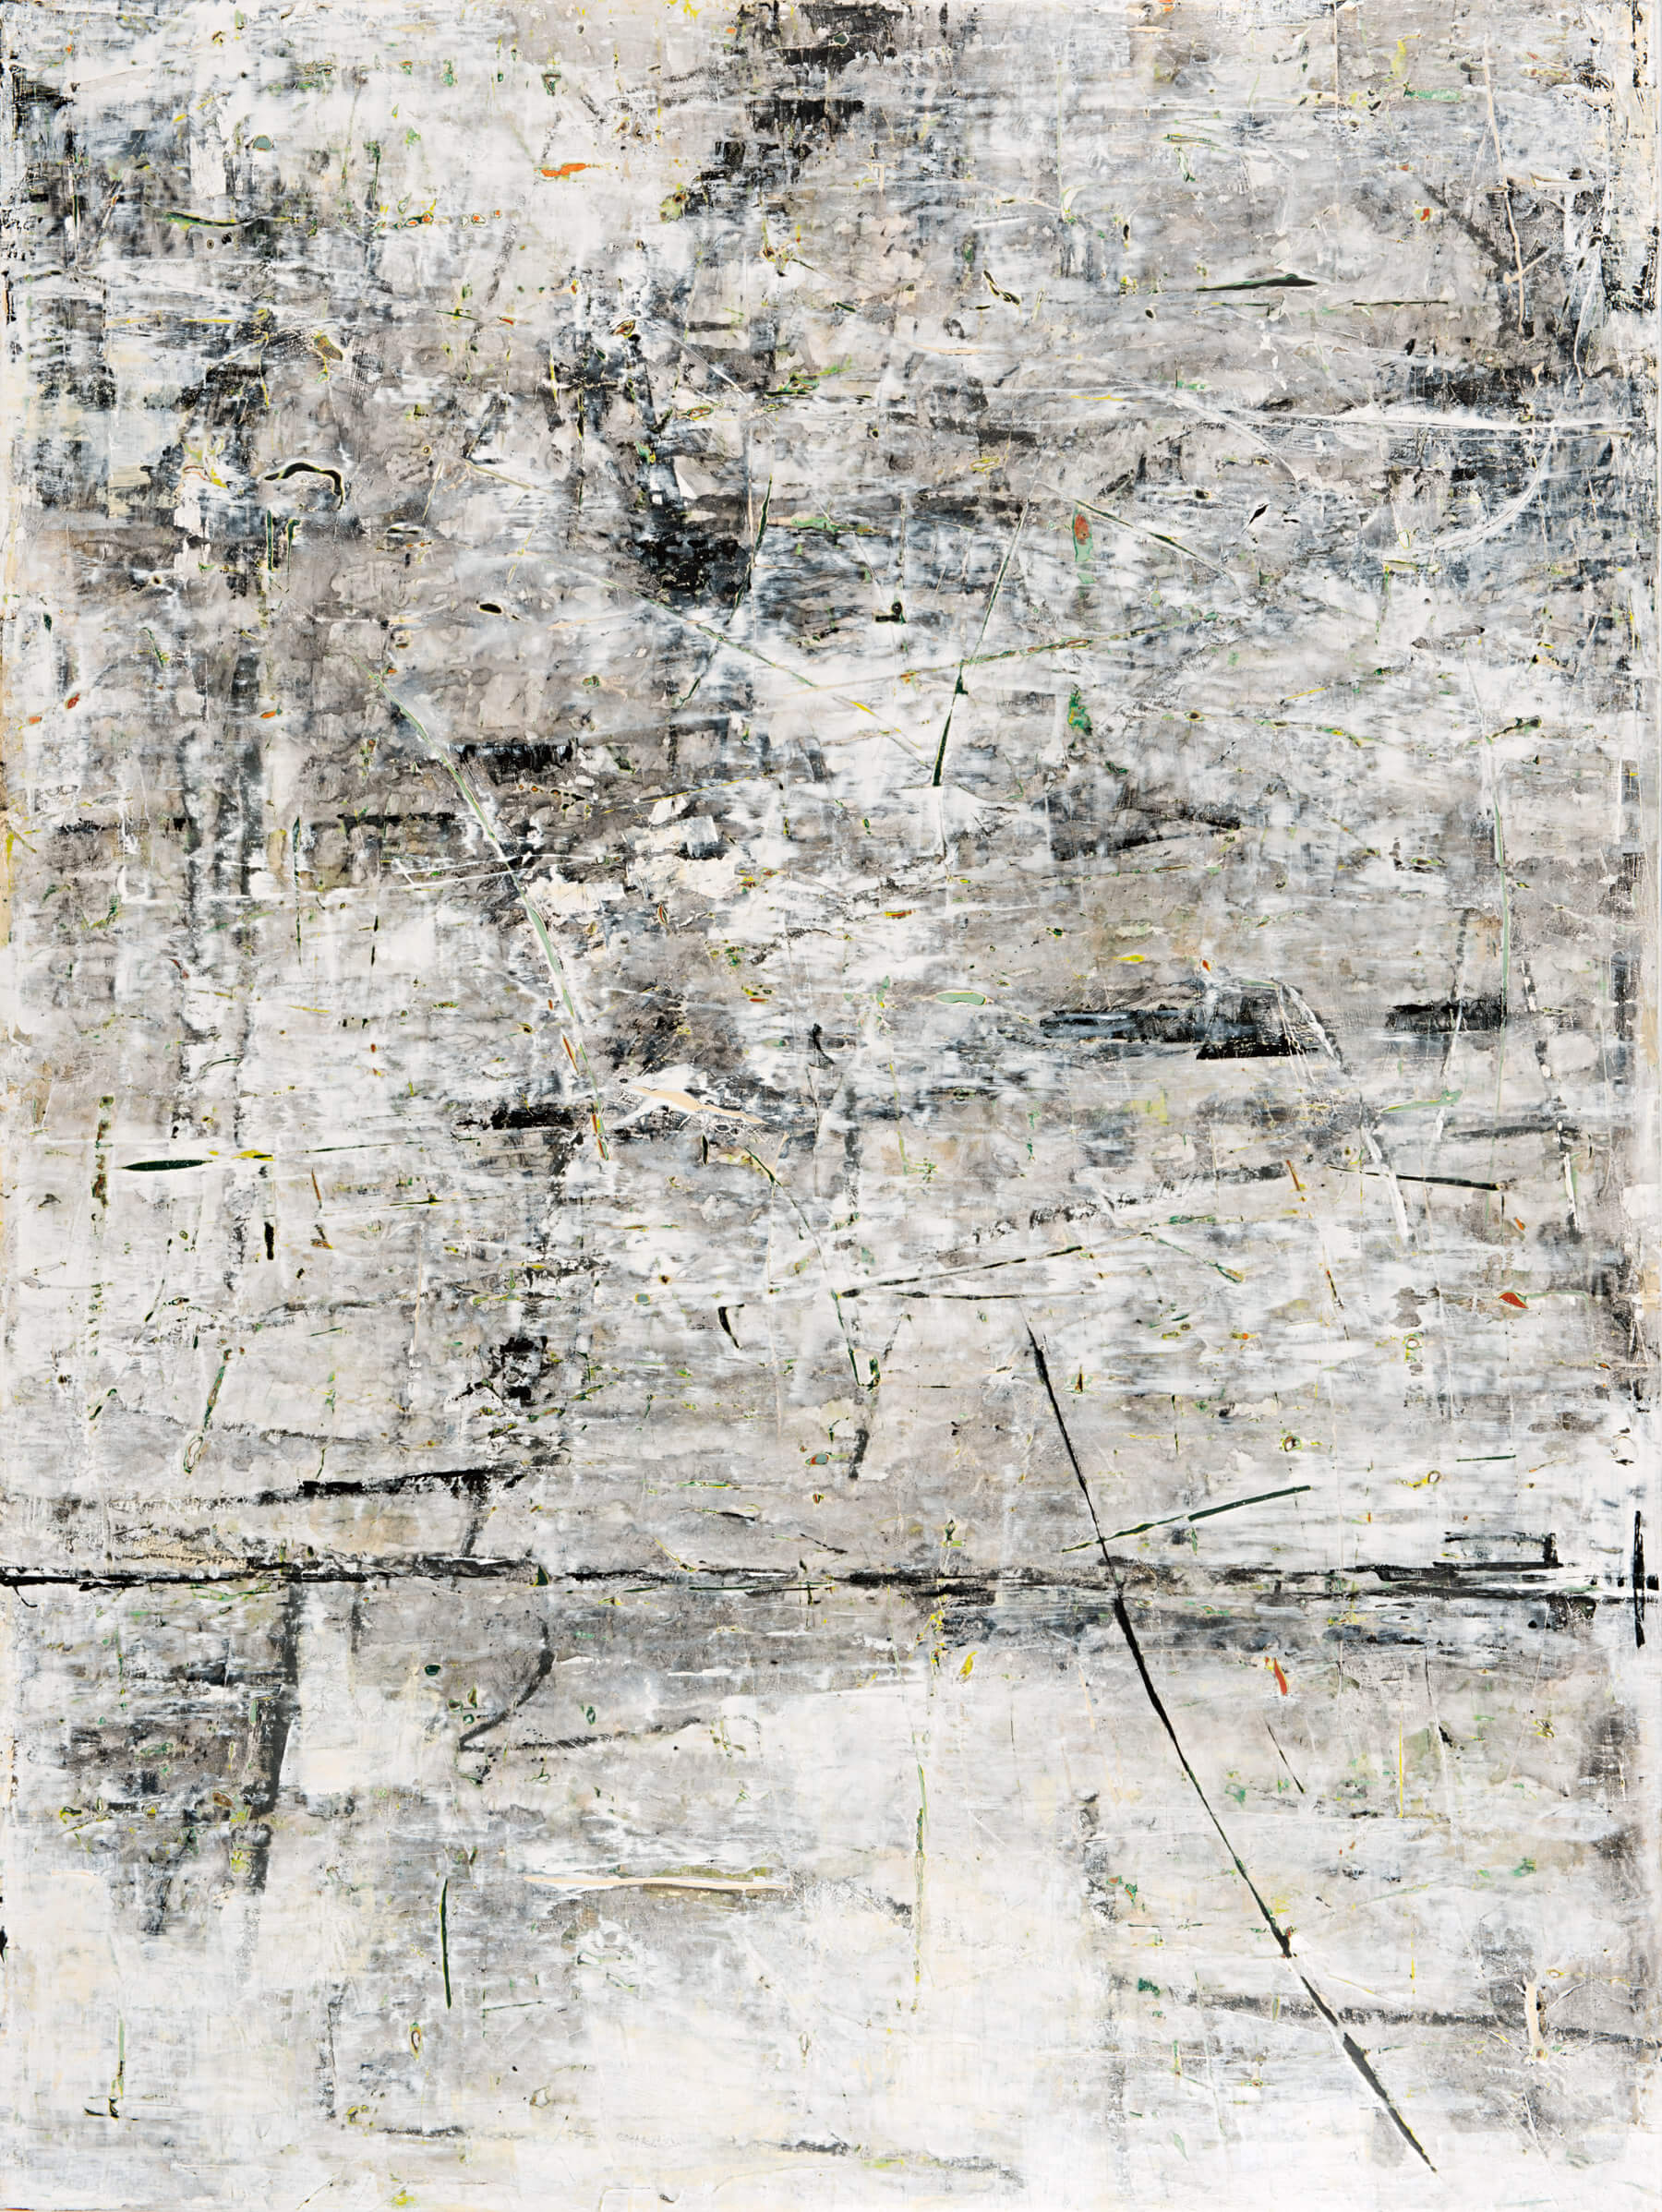 limestone-chillagoe-series1-8-x-1-37m-acrylic-on-canvas-5800